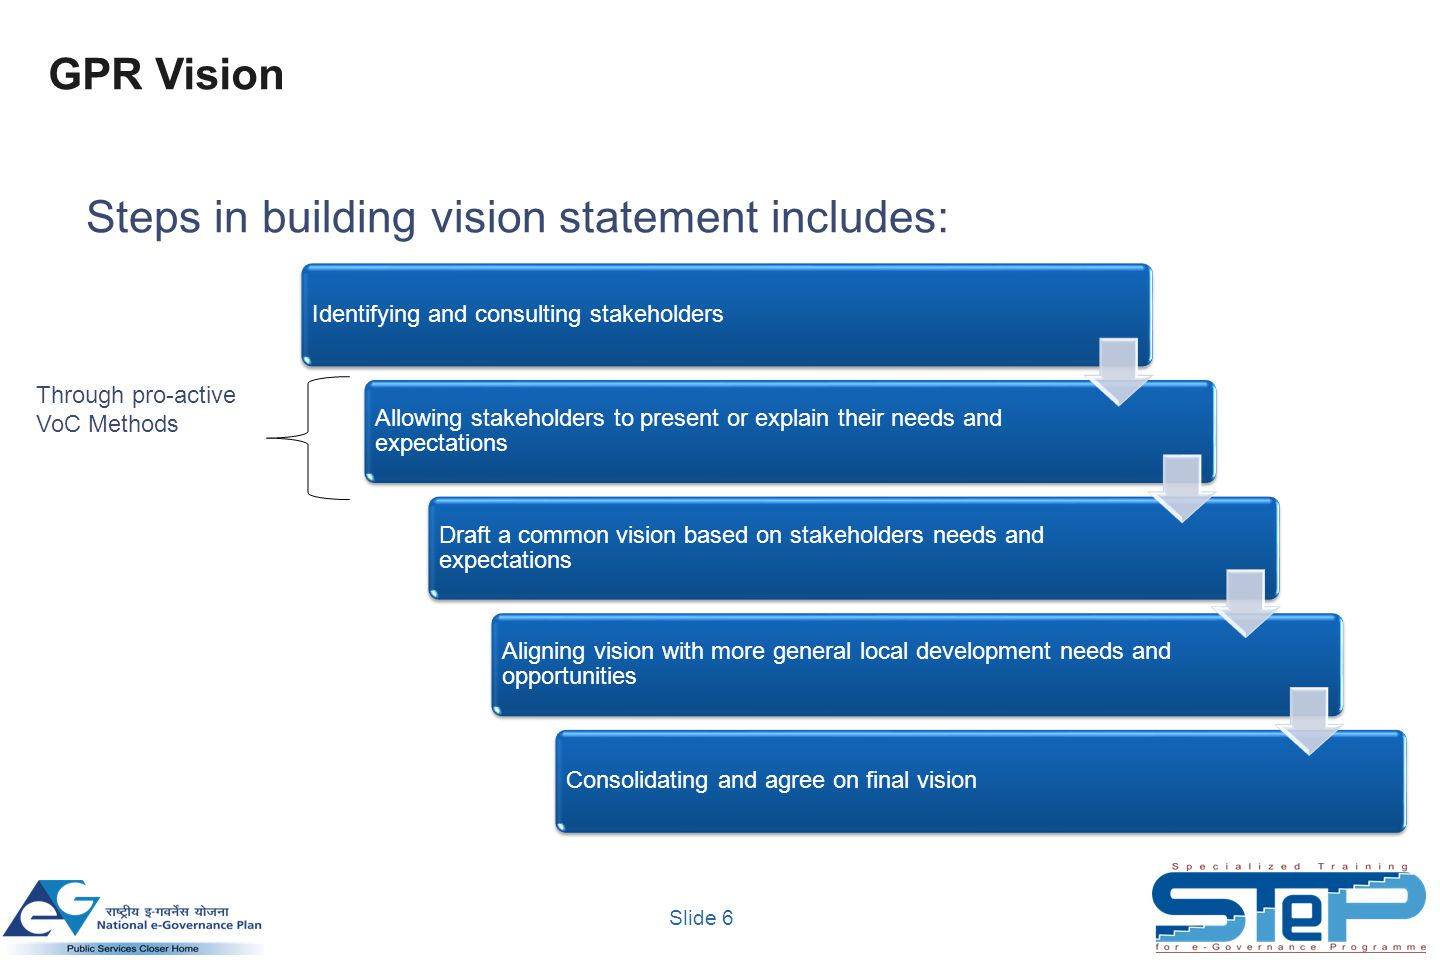 Slide 6 Identifying and consulting stakeholders Allowing stakeholders to present or explain their needs and expectations Draft a common vision based on stakeholders needs and expectations Aligning vision with more general local development needs and opportunities Consolidating and agree on final vision Steps in building vision statement includes: GPR Vision Through pro-active VoC Methods